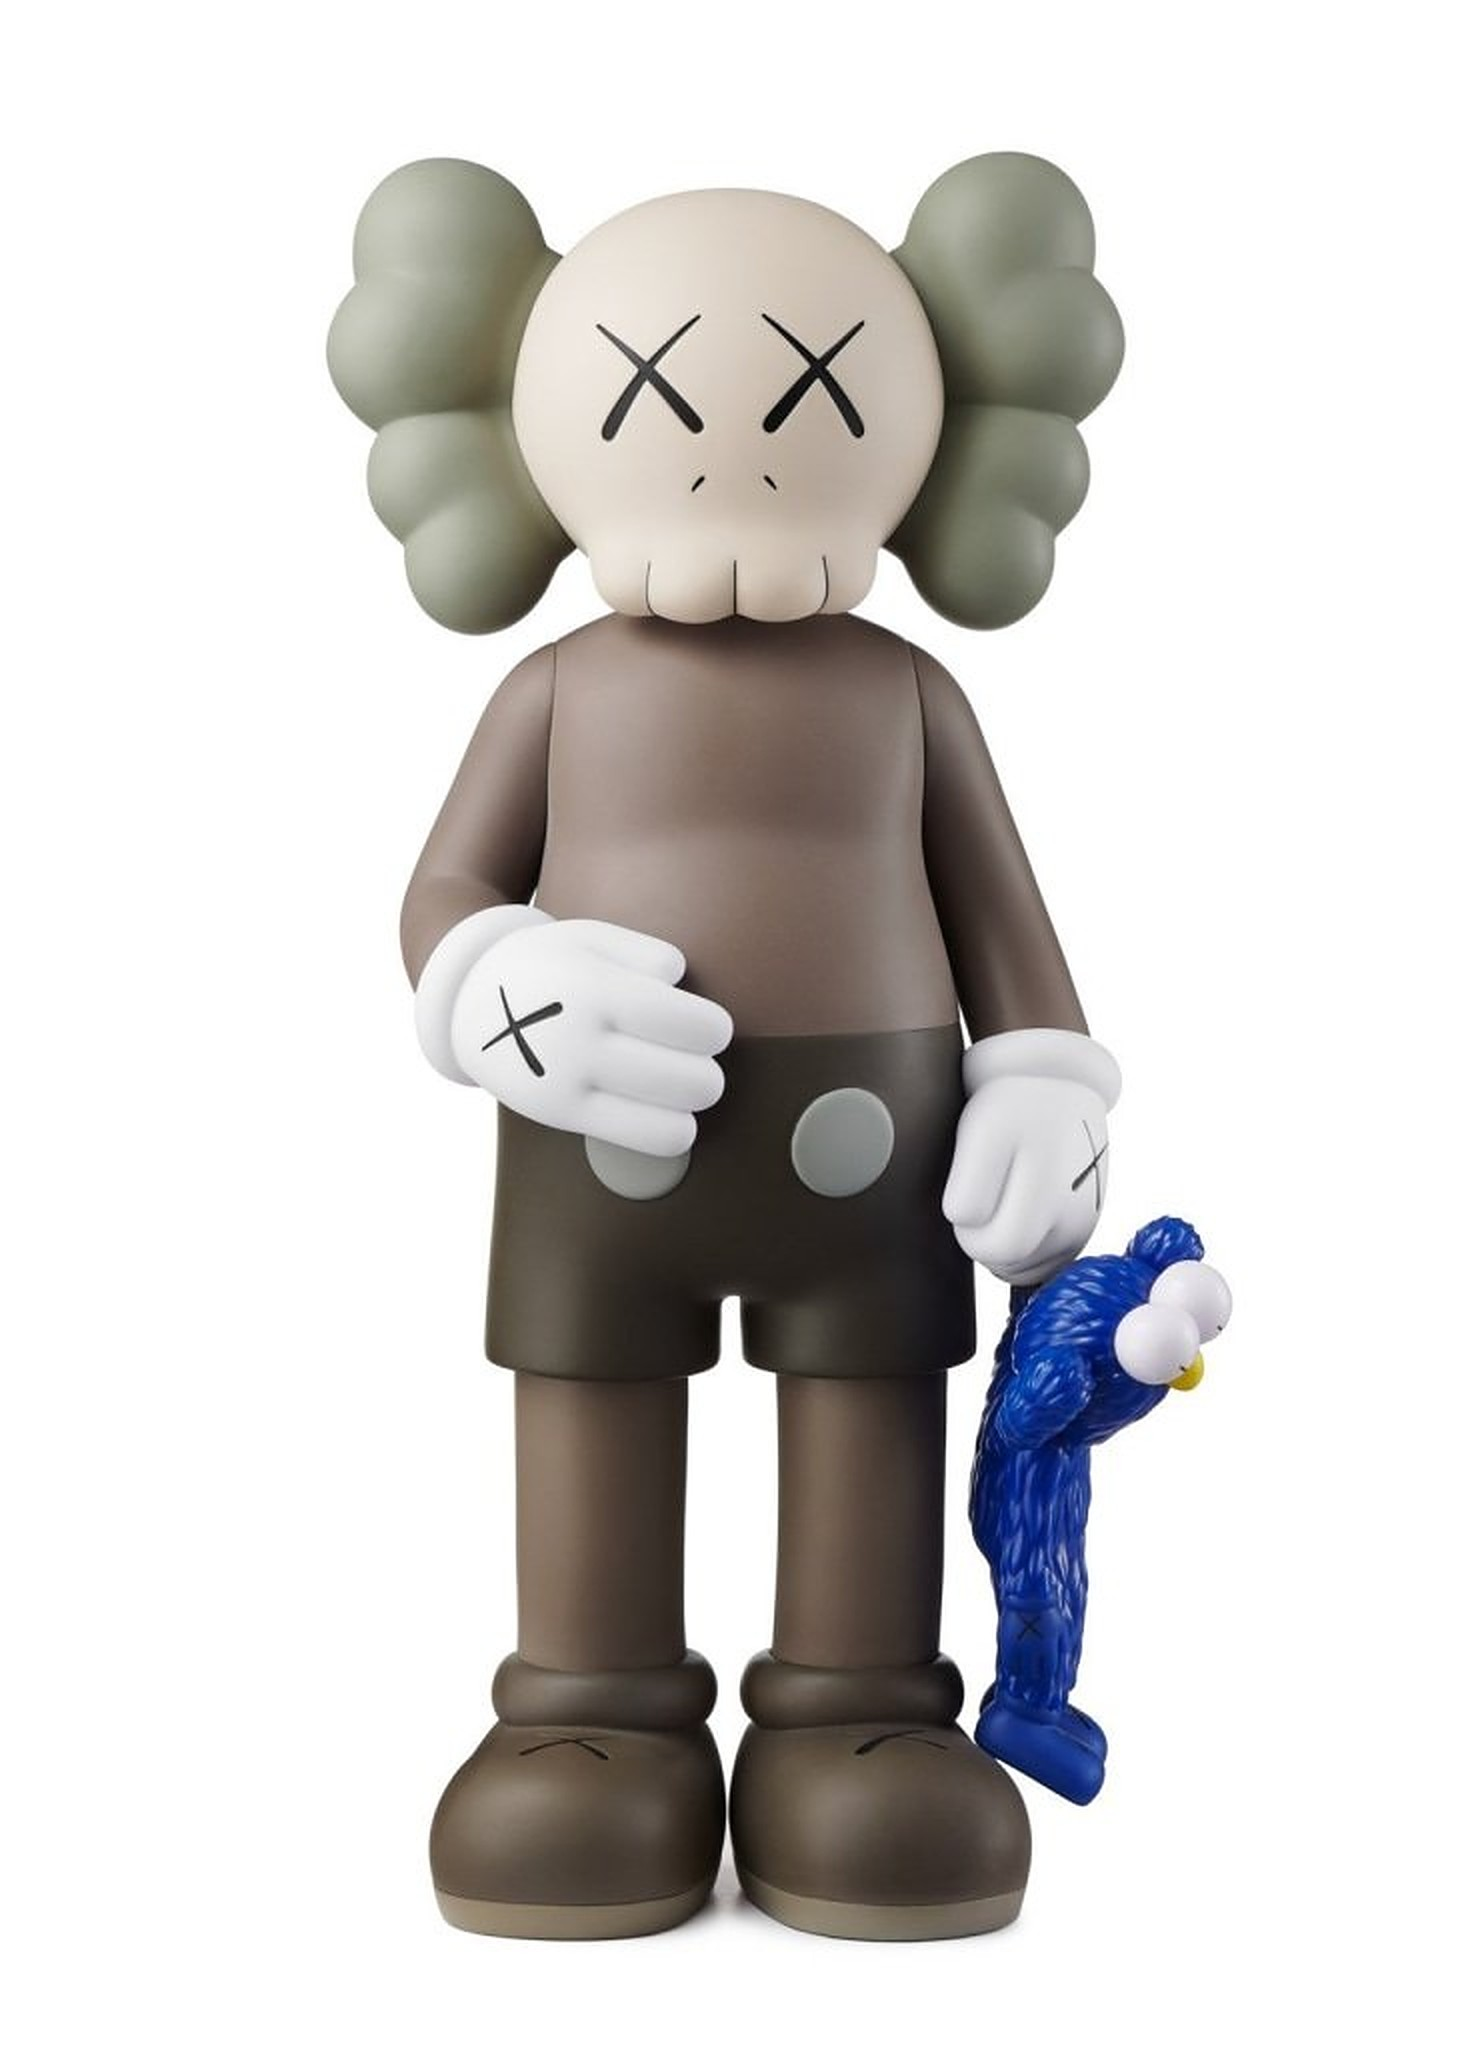 Share (Brown) by KAWS